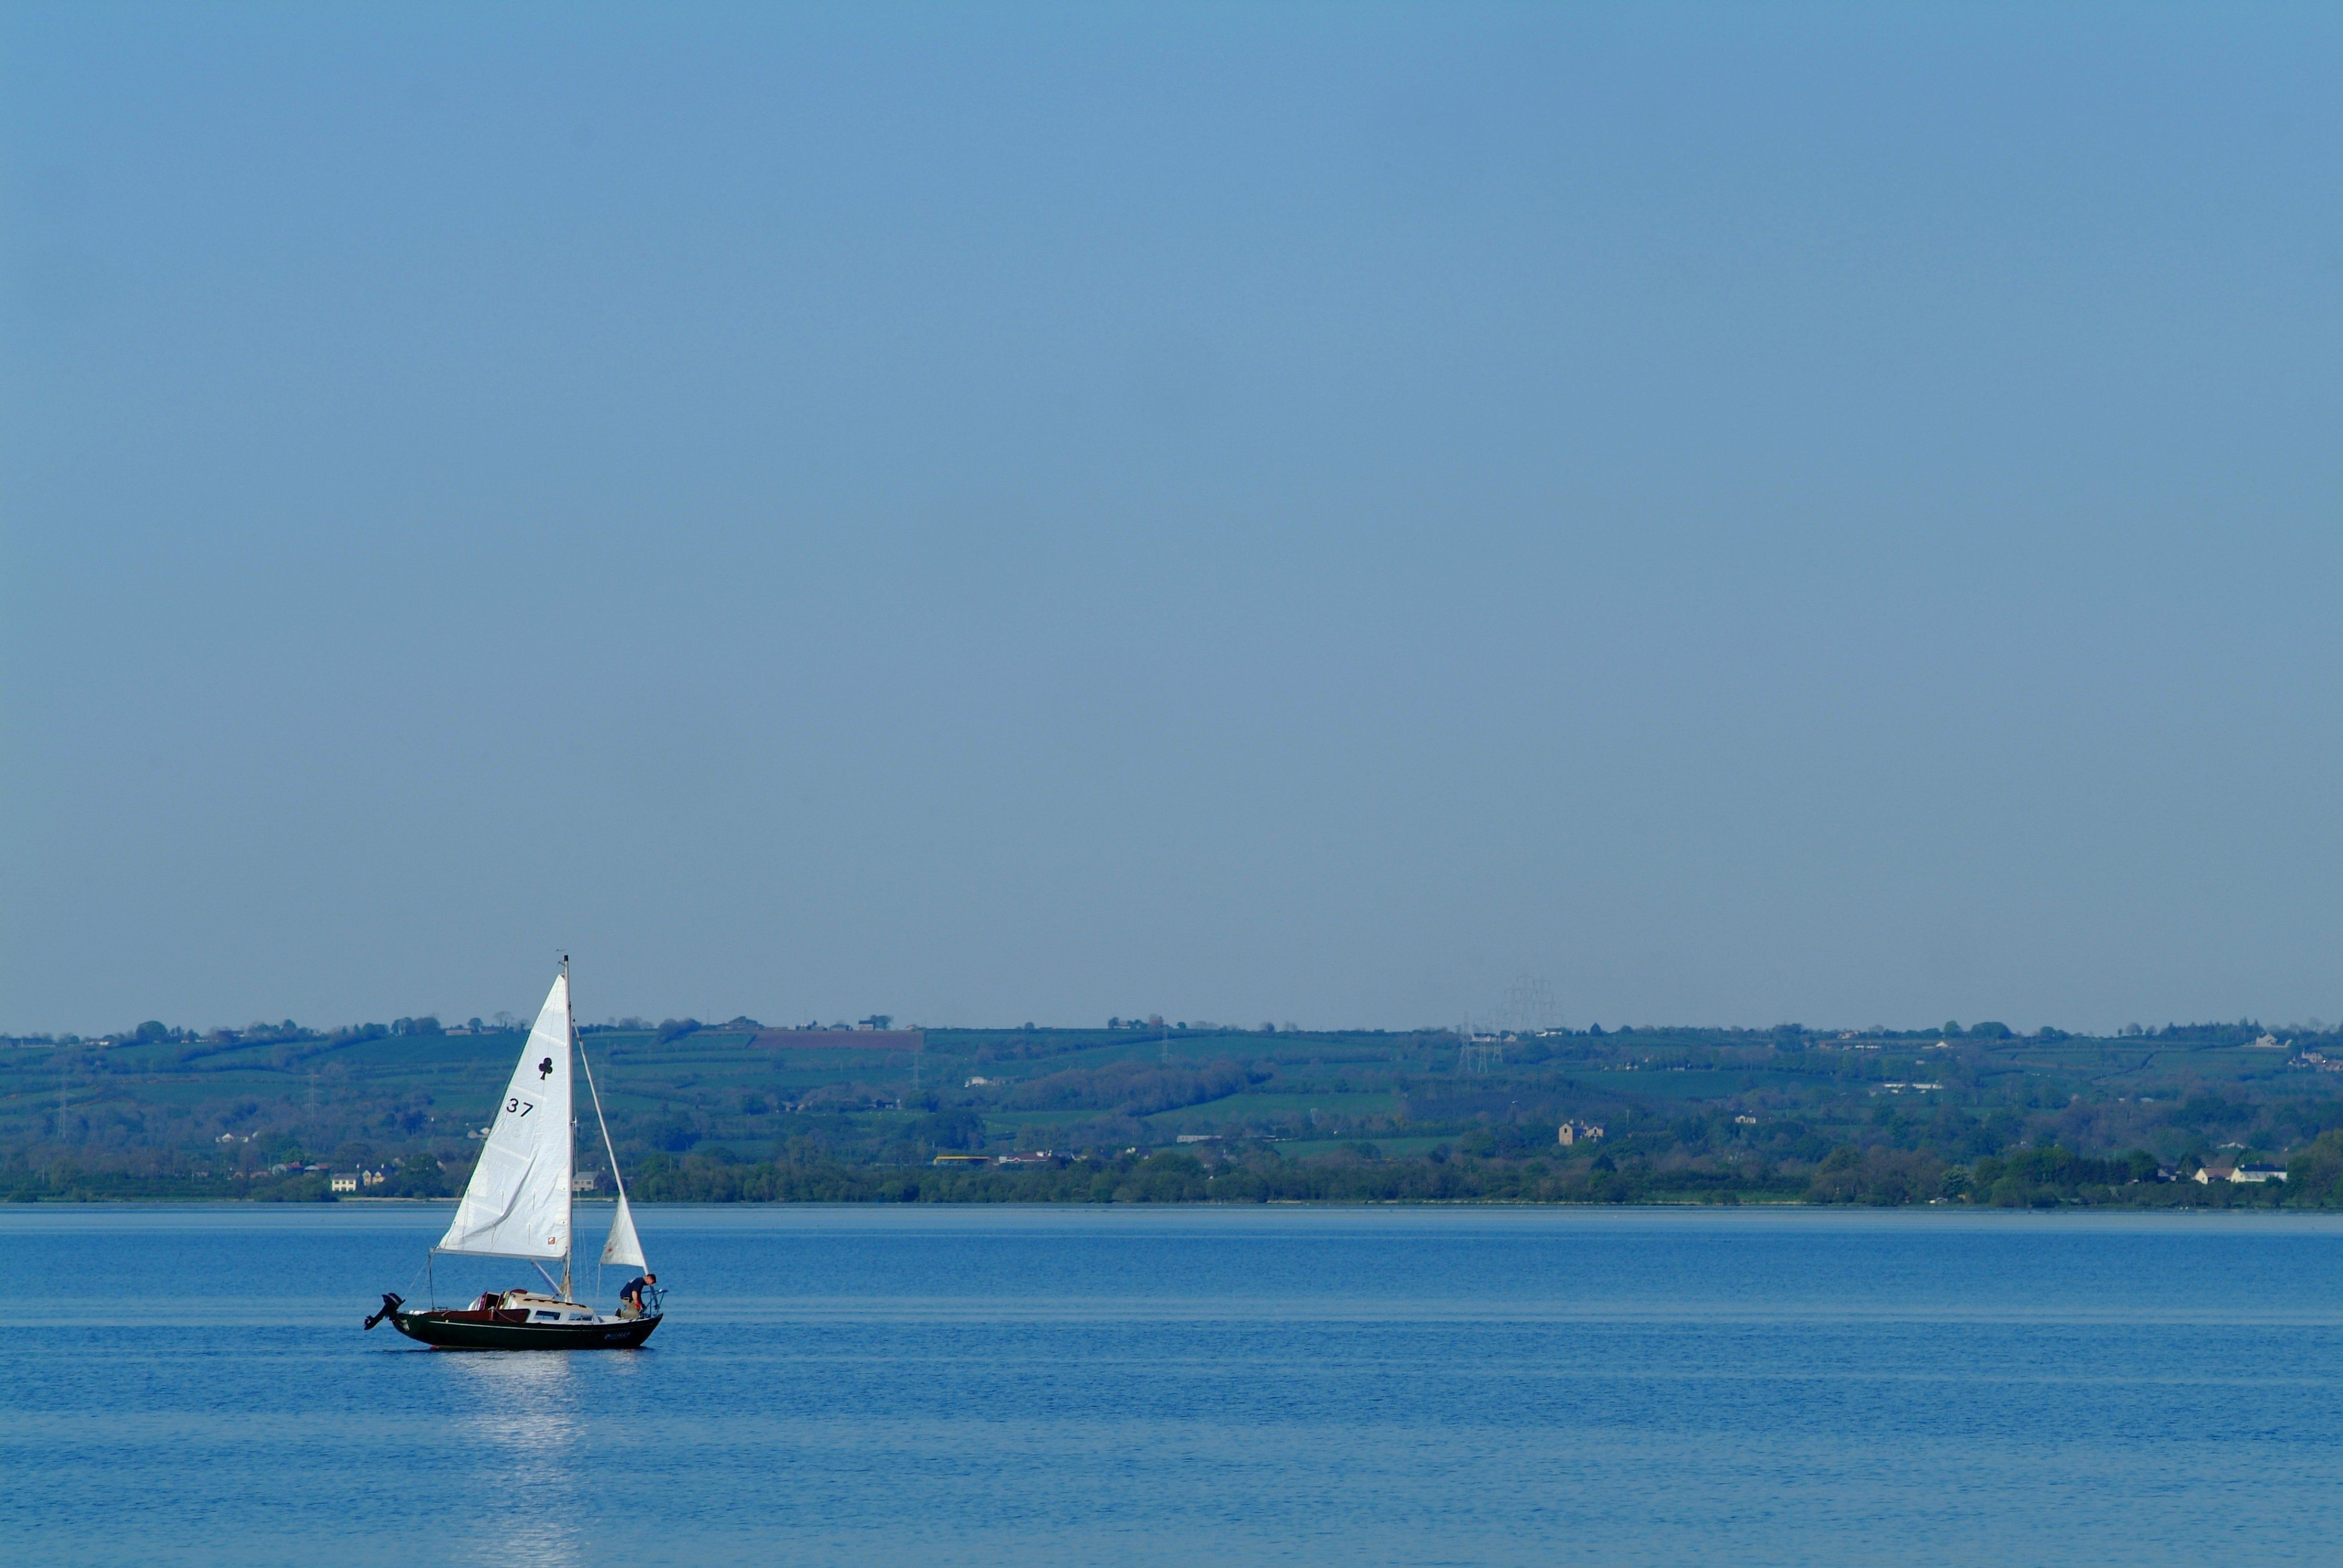 A boat on Lough Neagh